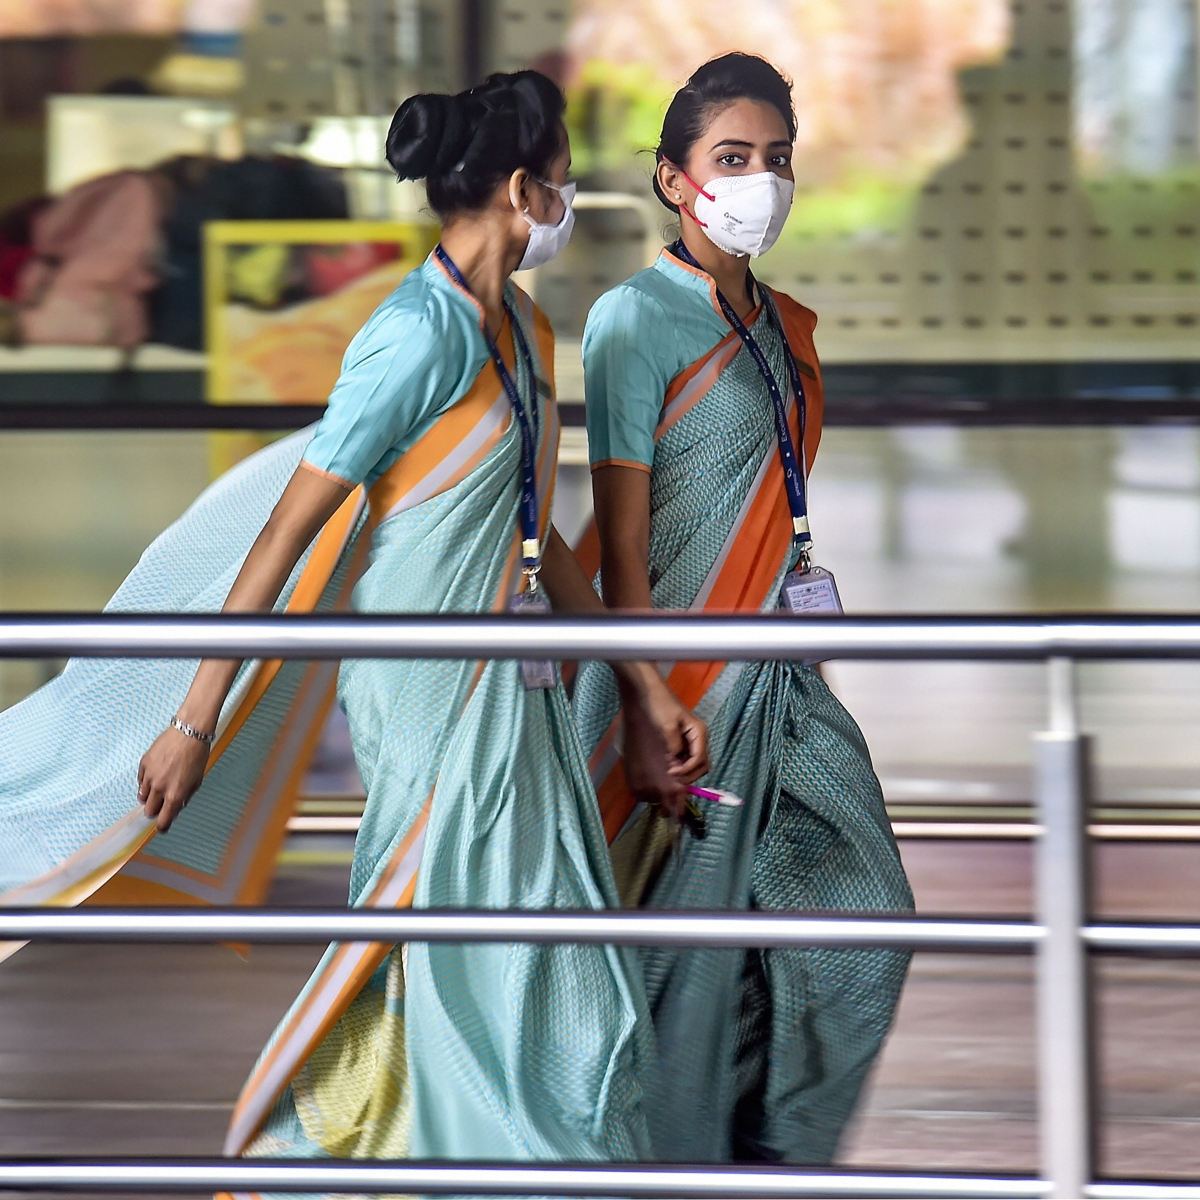 Coronavirus in Maharashtra: Face masks made compulsory in Mumbai, Pune and Thane